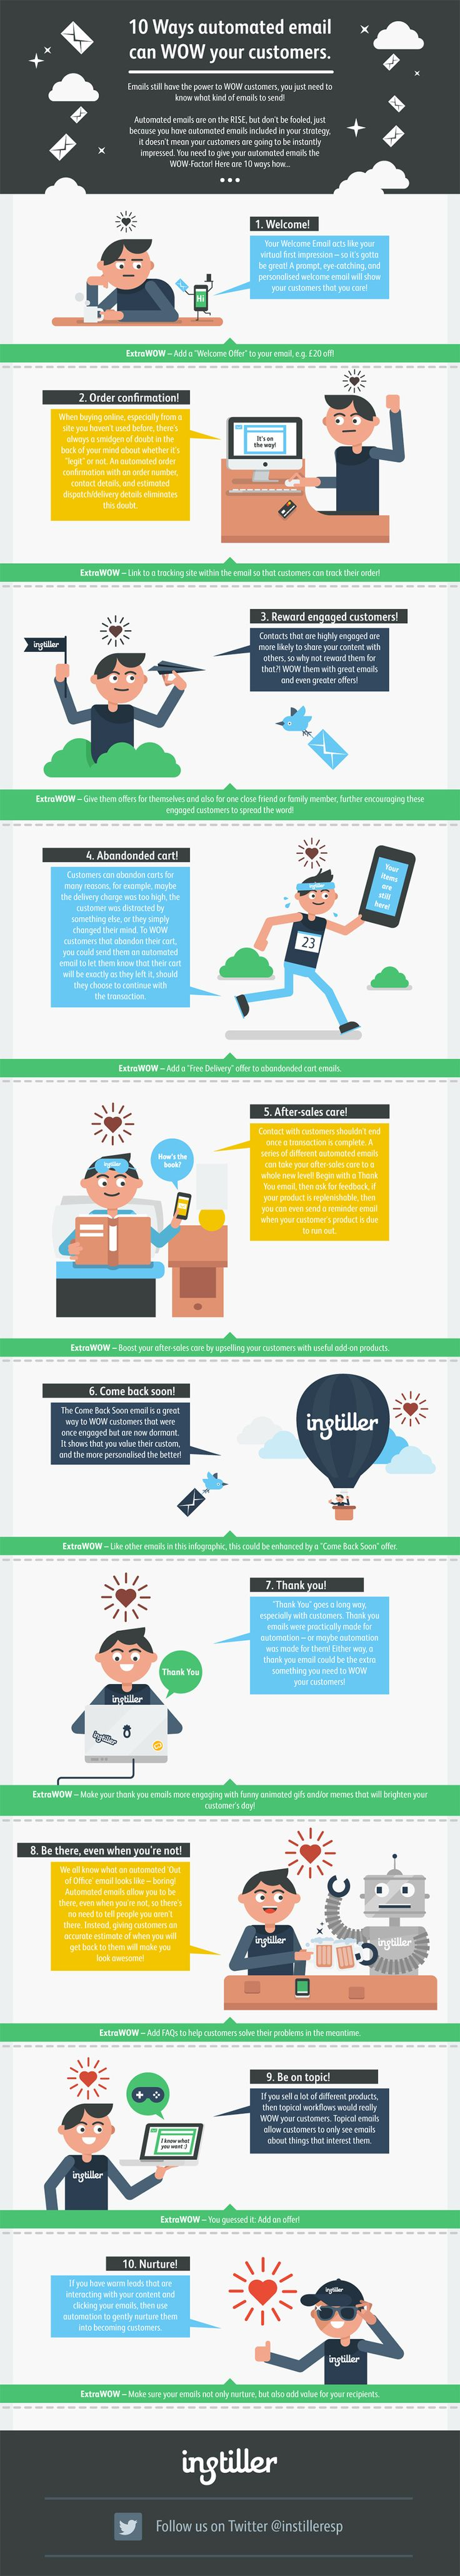 10 Ways to WOW Your Customers With Automated Emails [INFOGRAPIC]